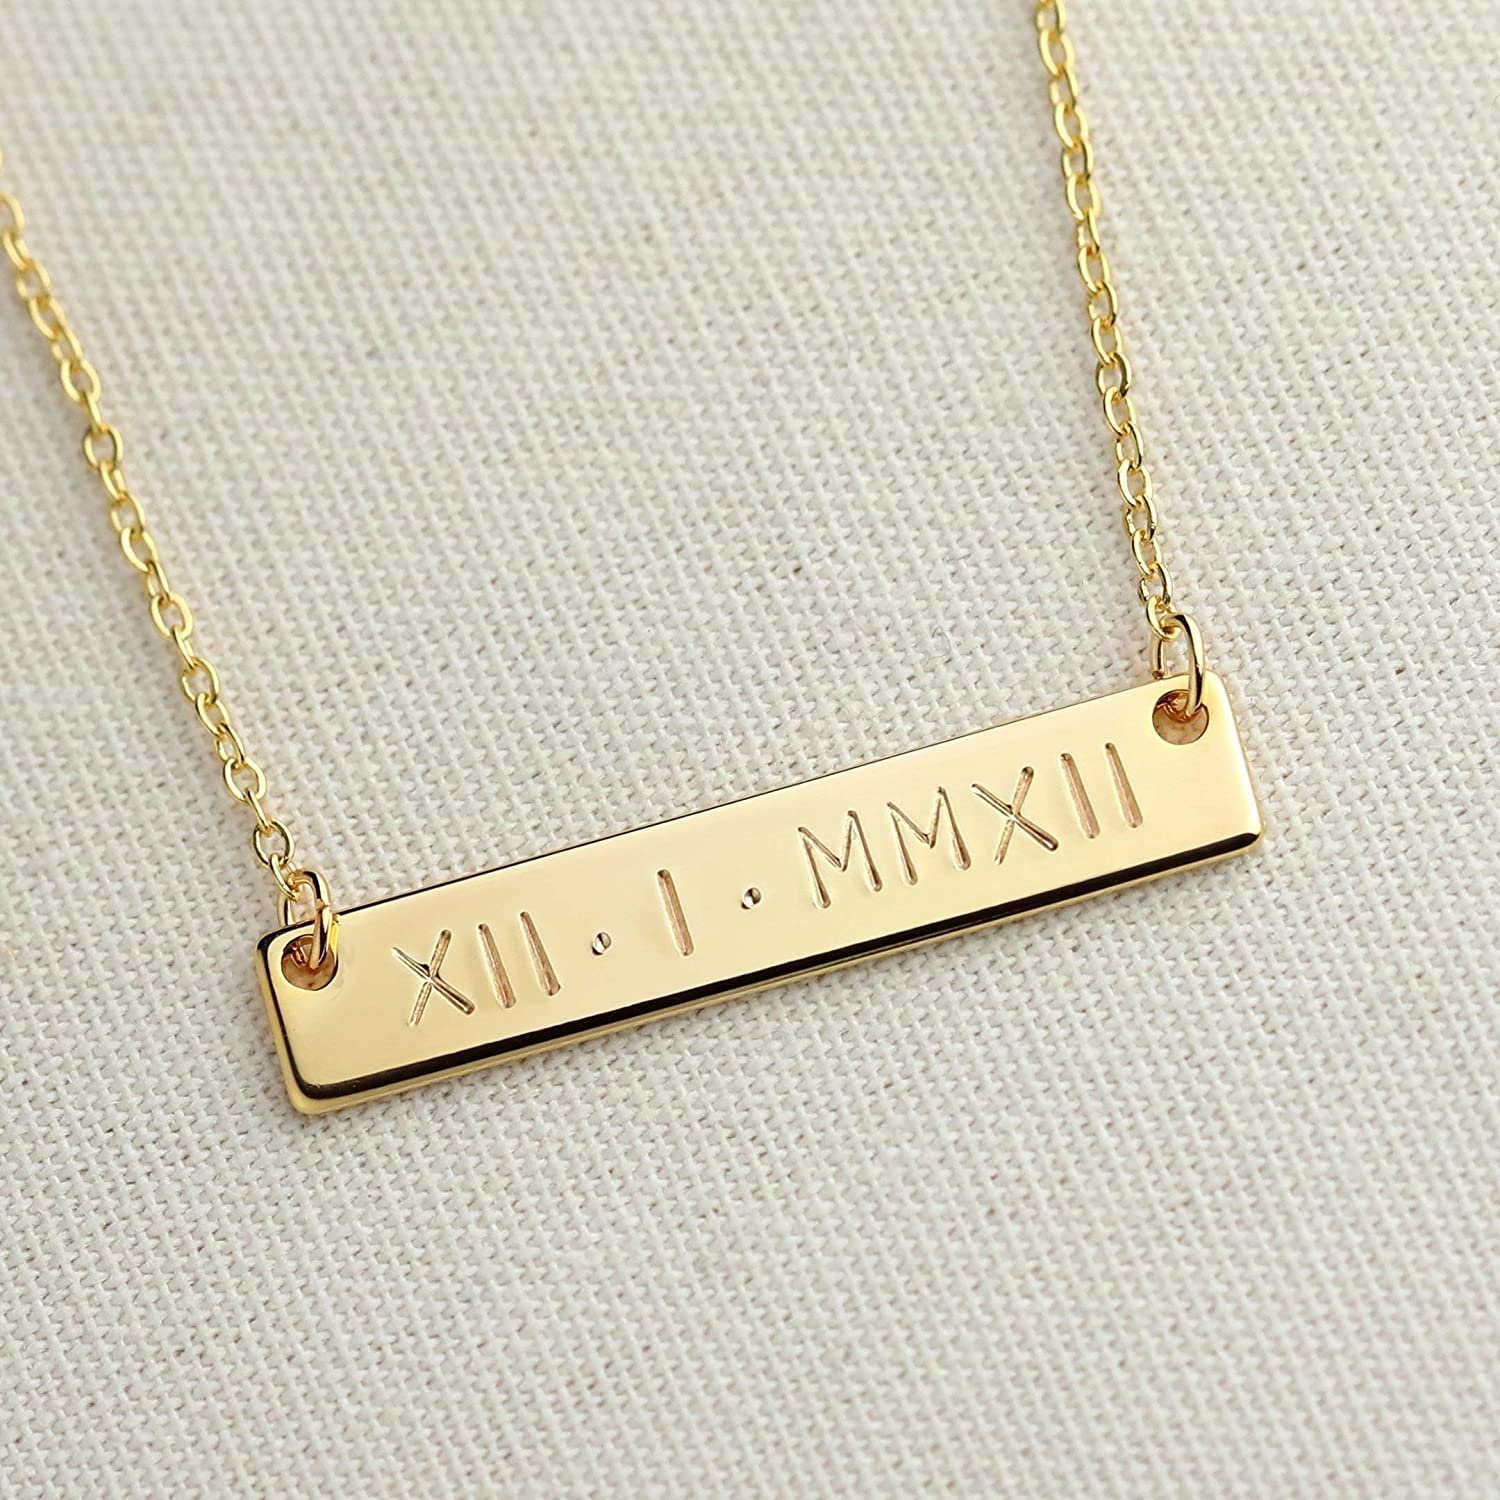 A SAME DAY SHIPPING before 3 PM EST Roman Numerals Wedding Date Necklace Engraving Special date Personalized Christmas gift Wedding Gift special date - 4N-RN